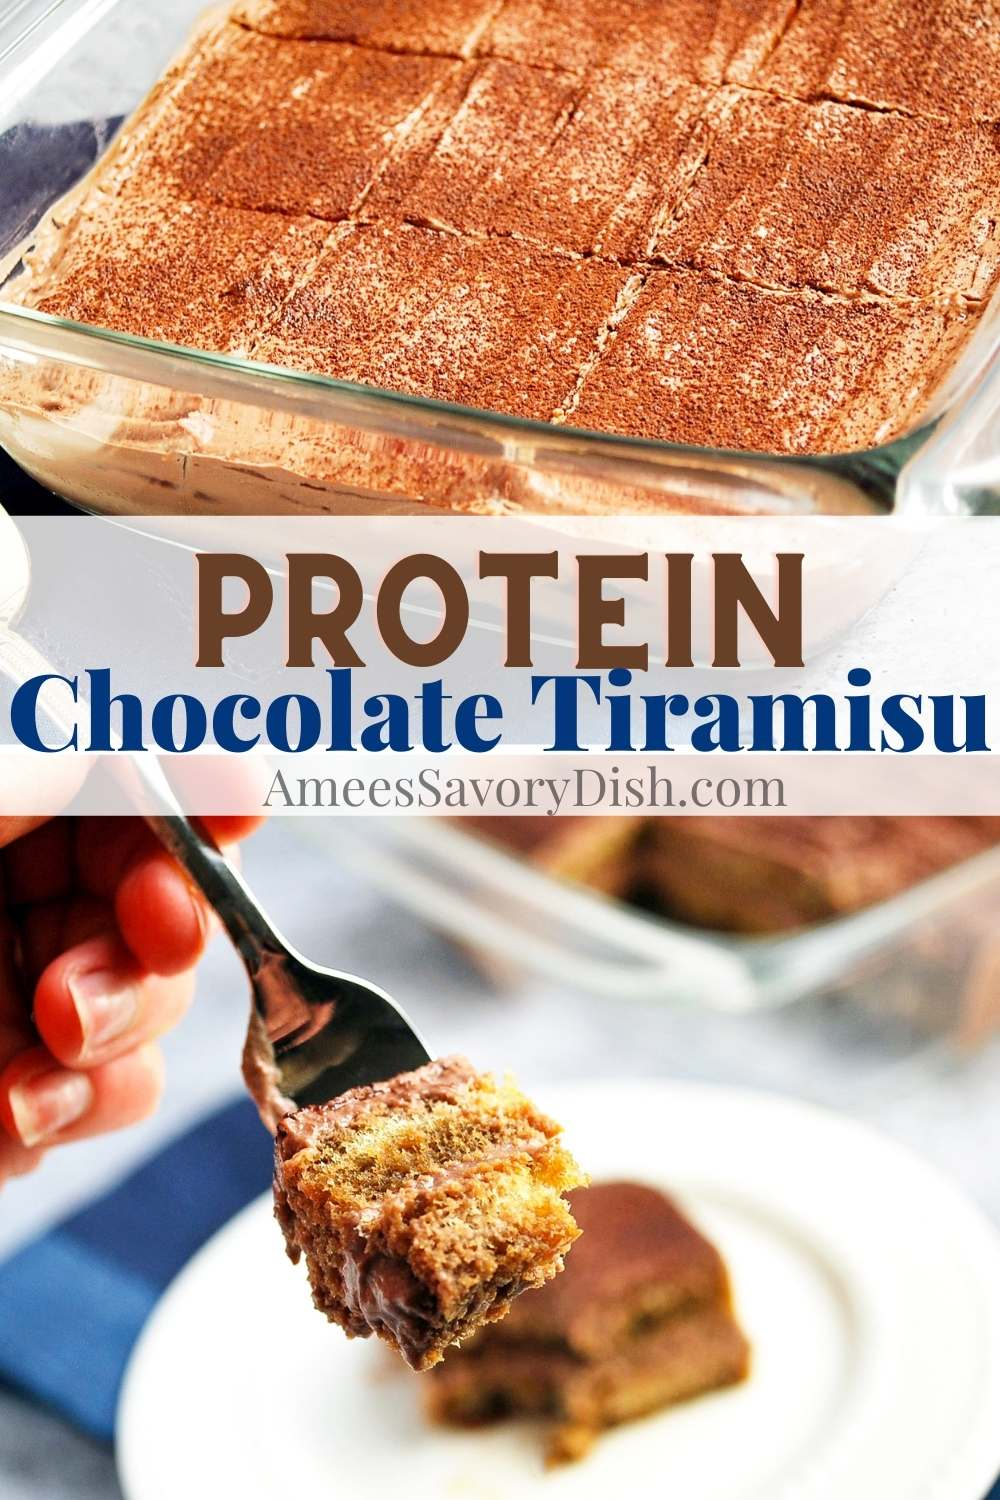 This Chocolate Protein Tiramisu recipe is a lighter version that's just as tasty as the original with a protein boost! via @Ameessavorydish